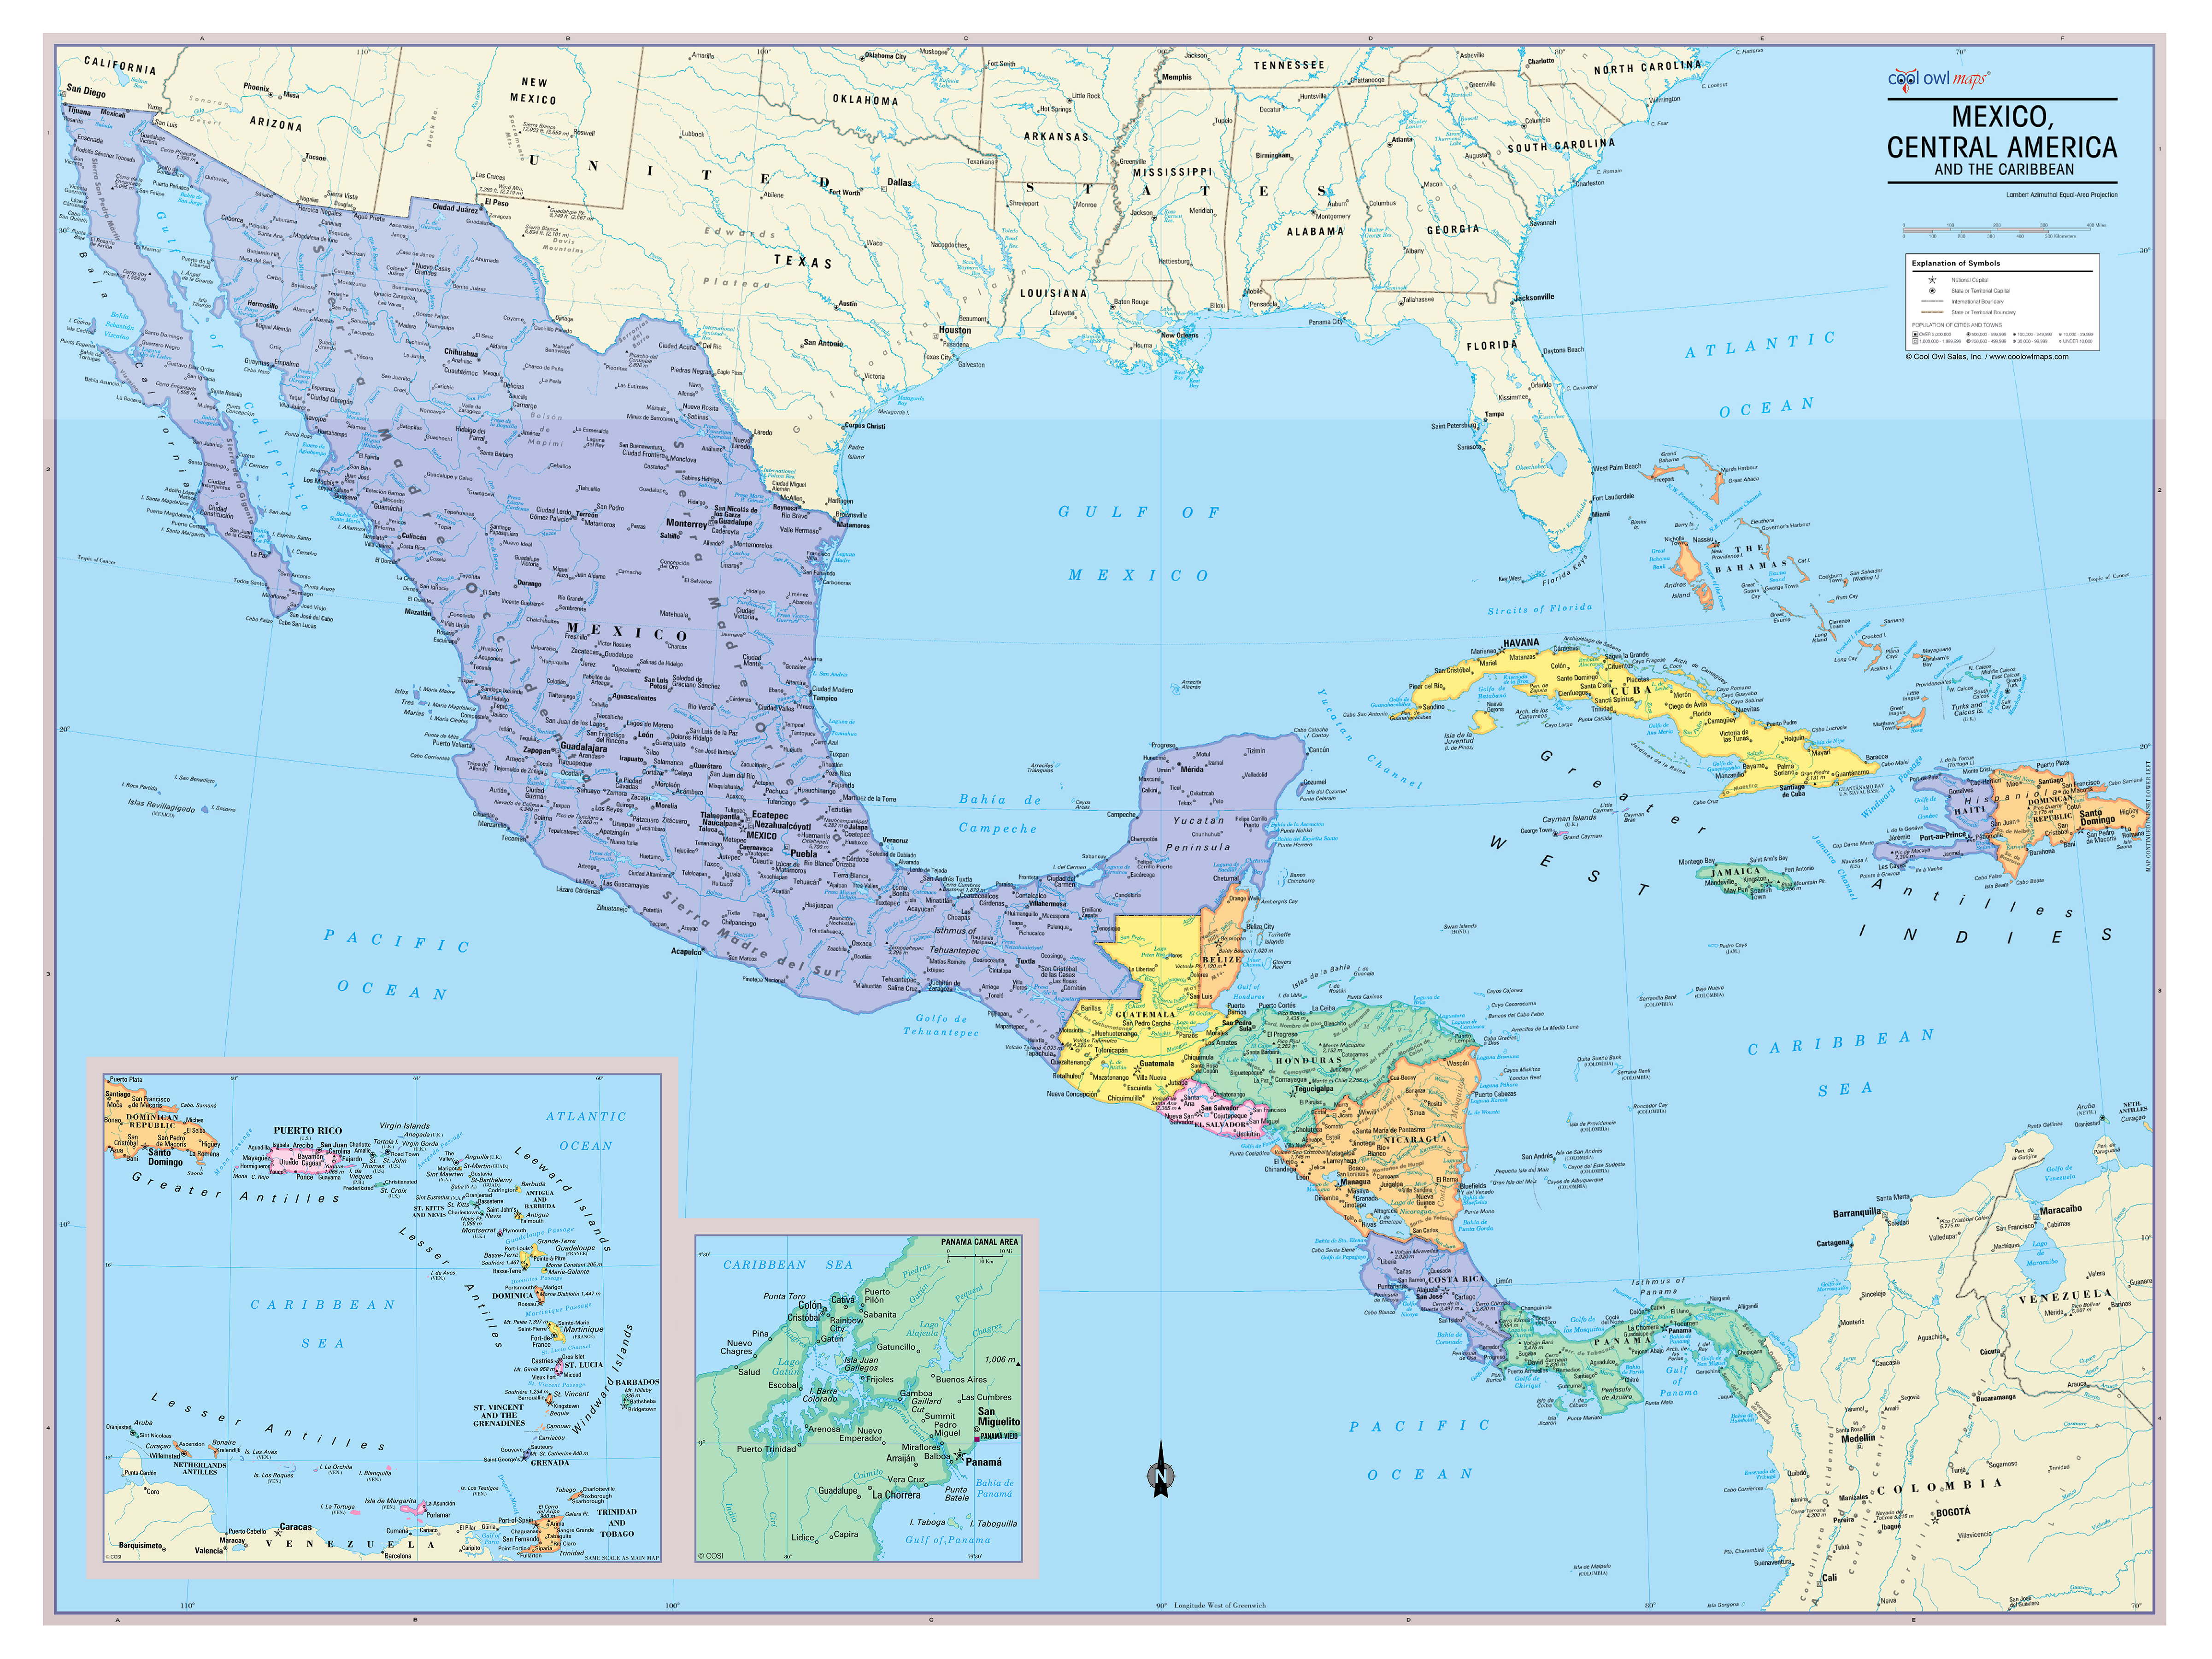 map mexico central america map usa map images